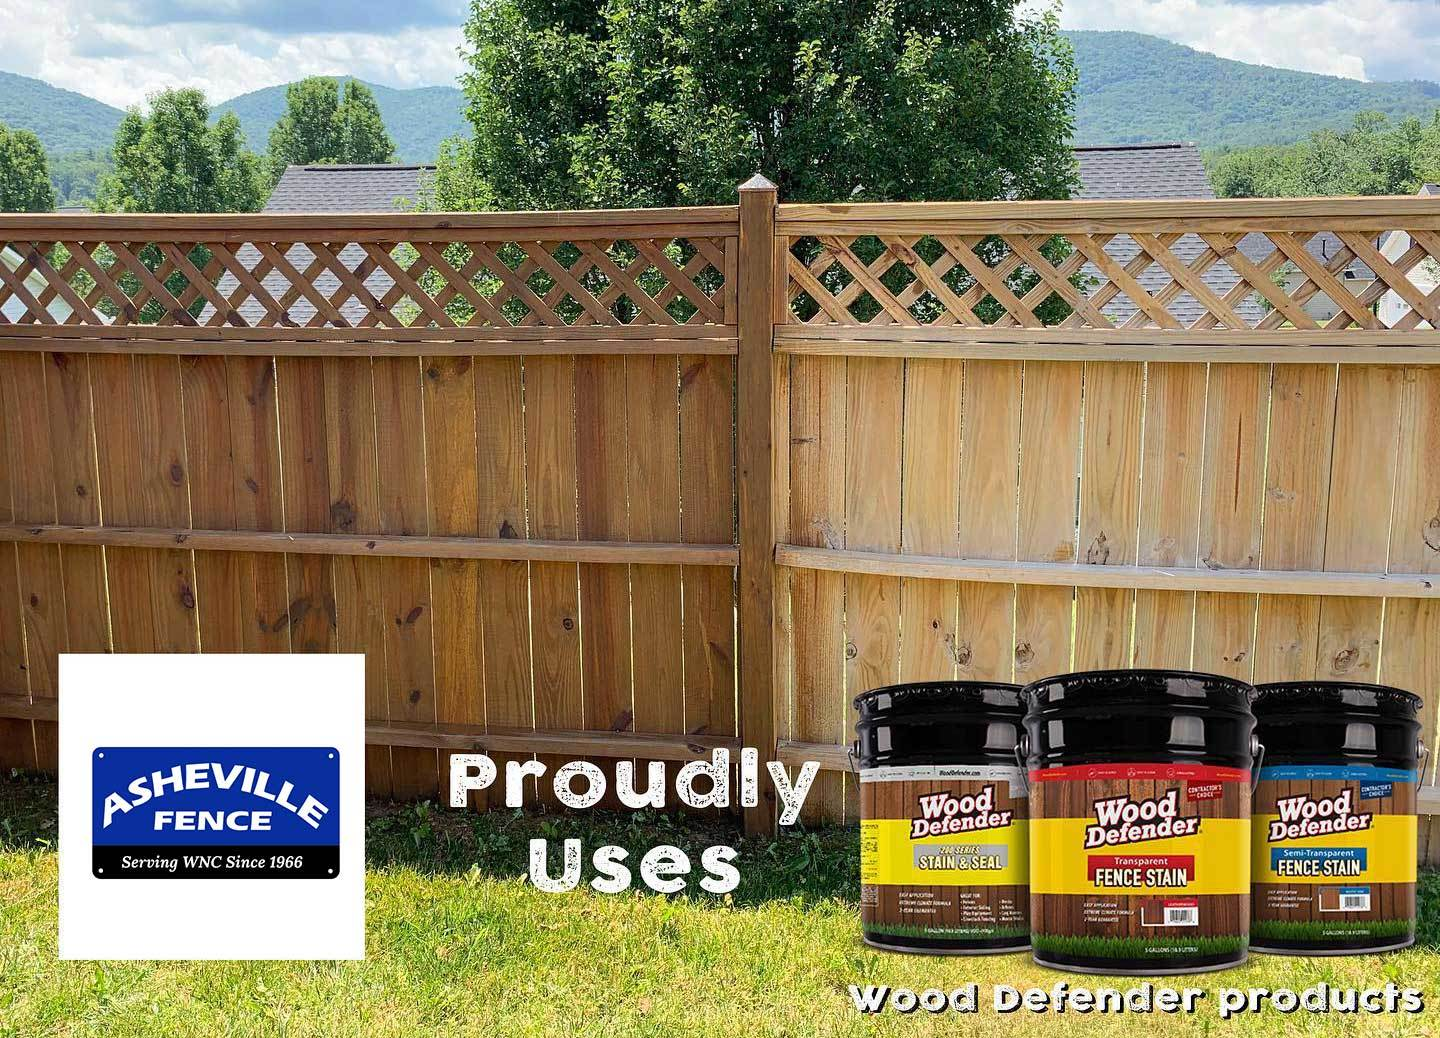 wood defender fence stain